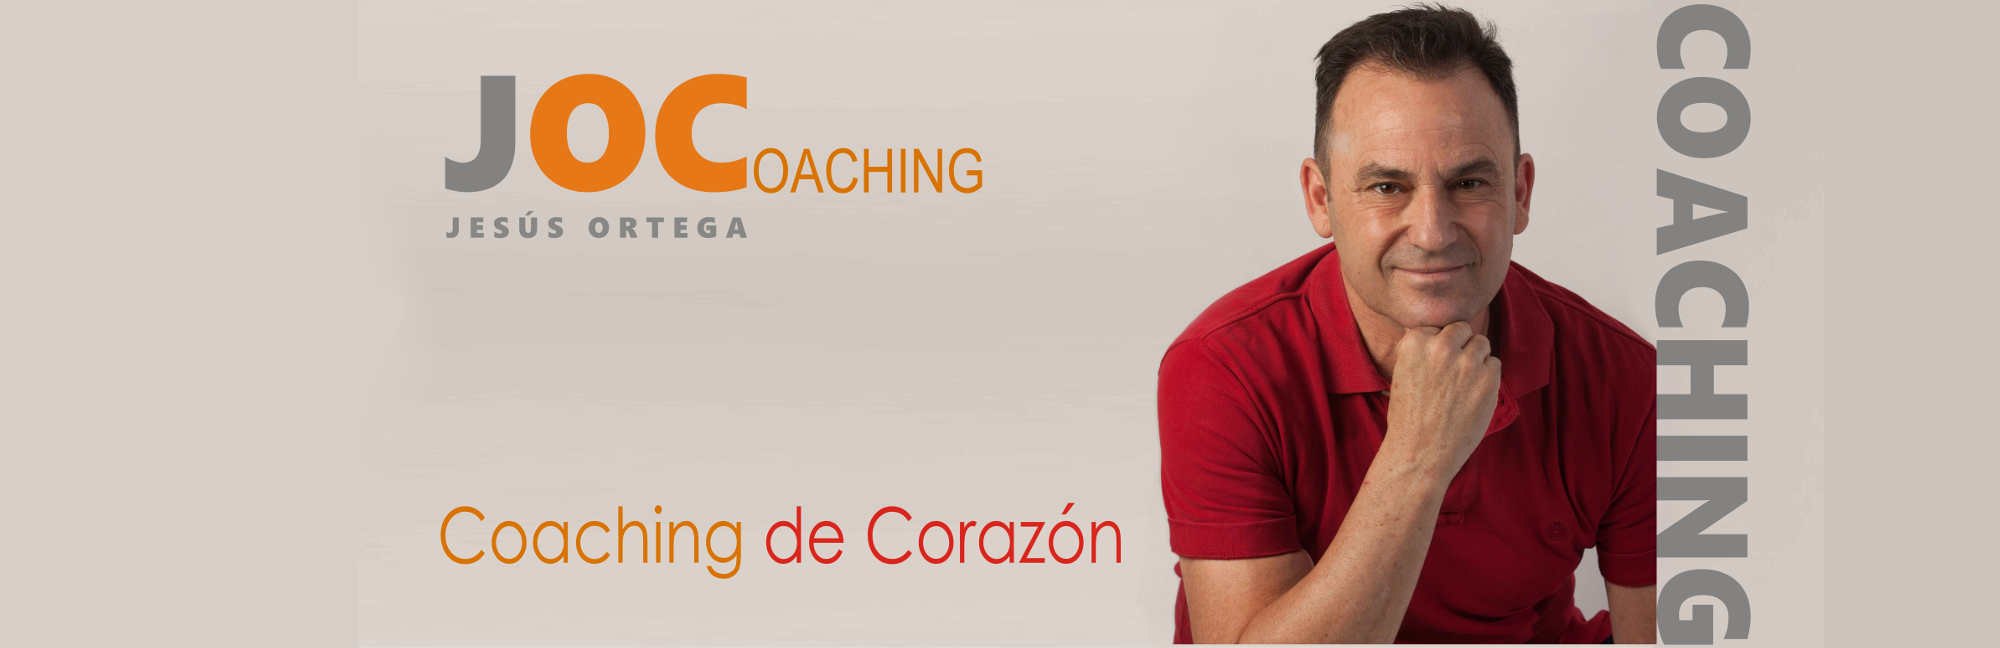 Jesús Ortega Coaching